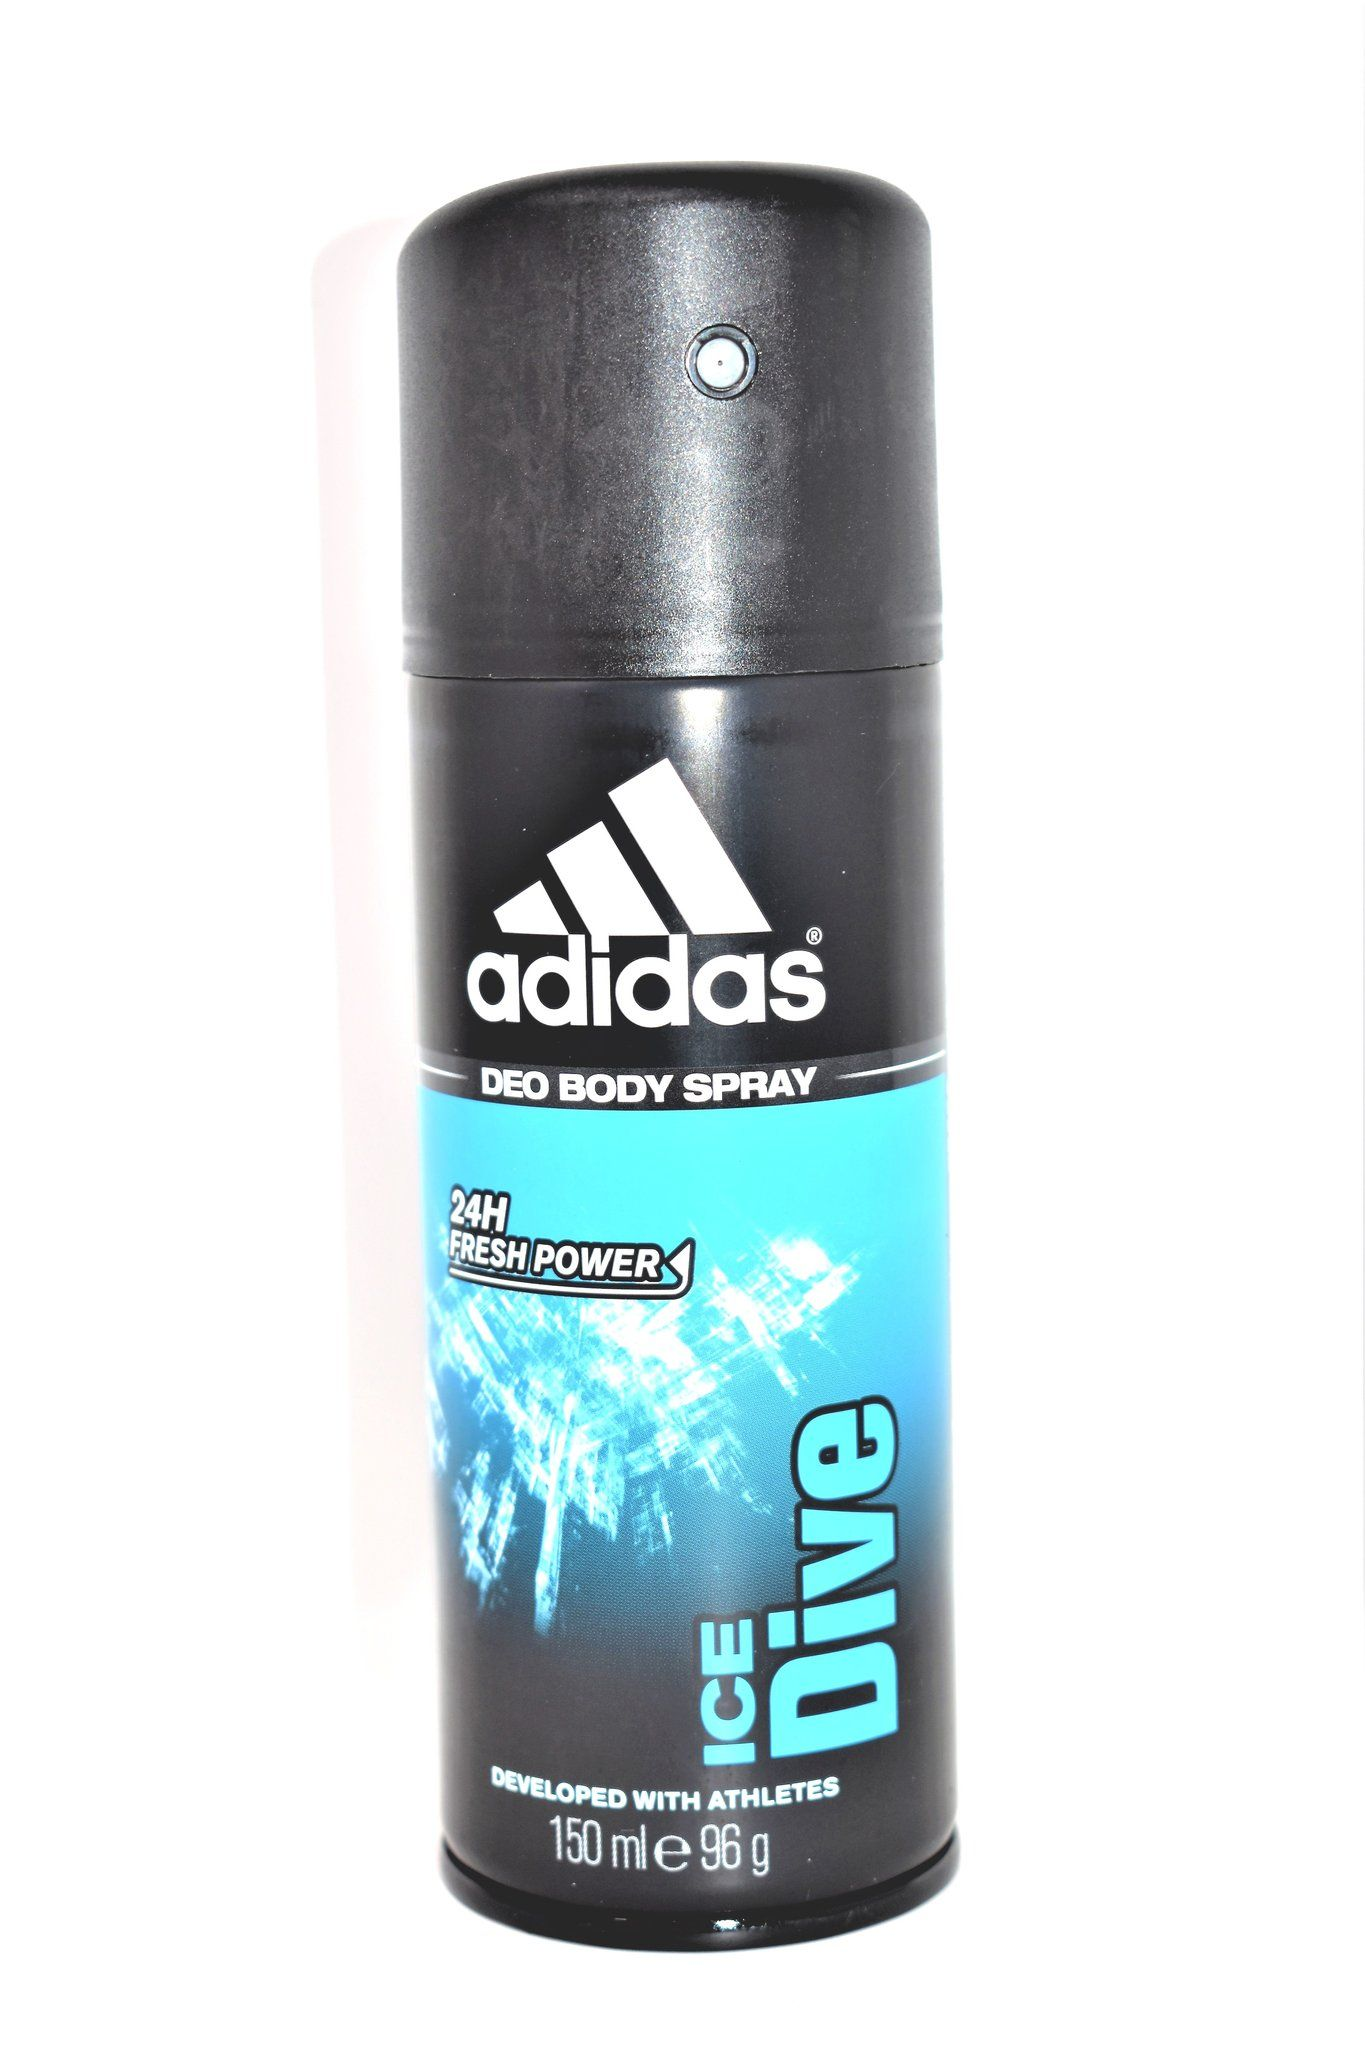 Adidas Deo Body Spray Ice Dive, 150 ml Bottle